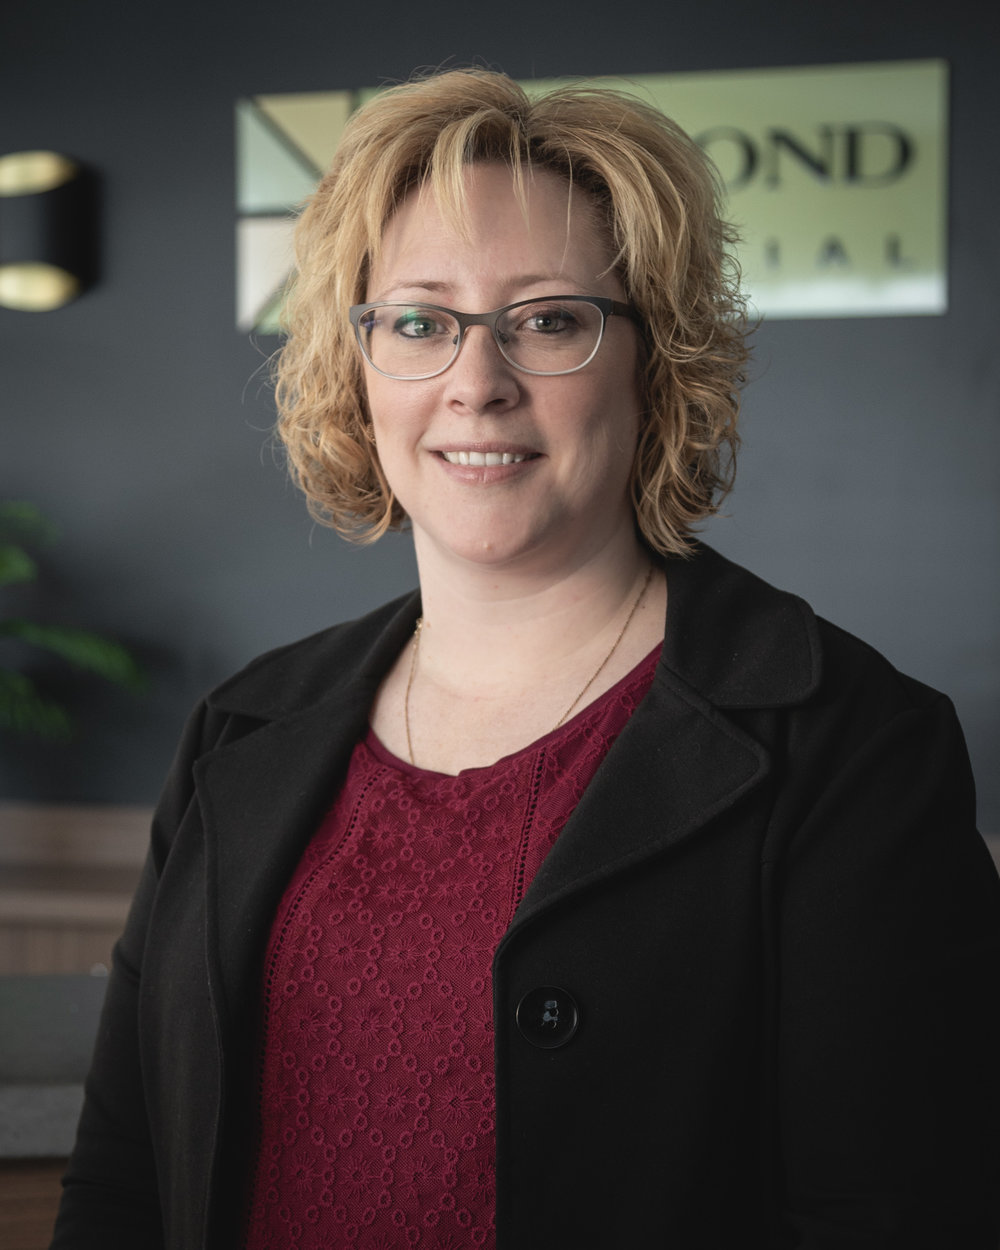 Tanya - Financial Services and Investments Regina, Wolfond Financial